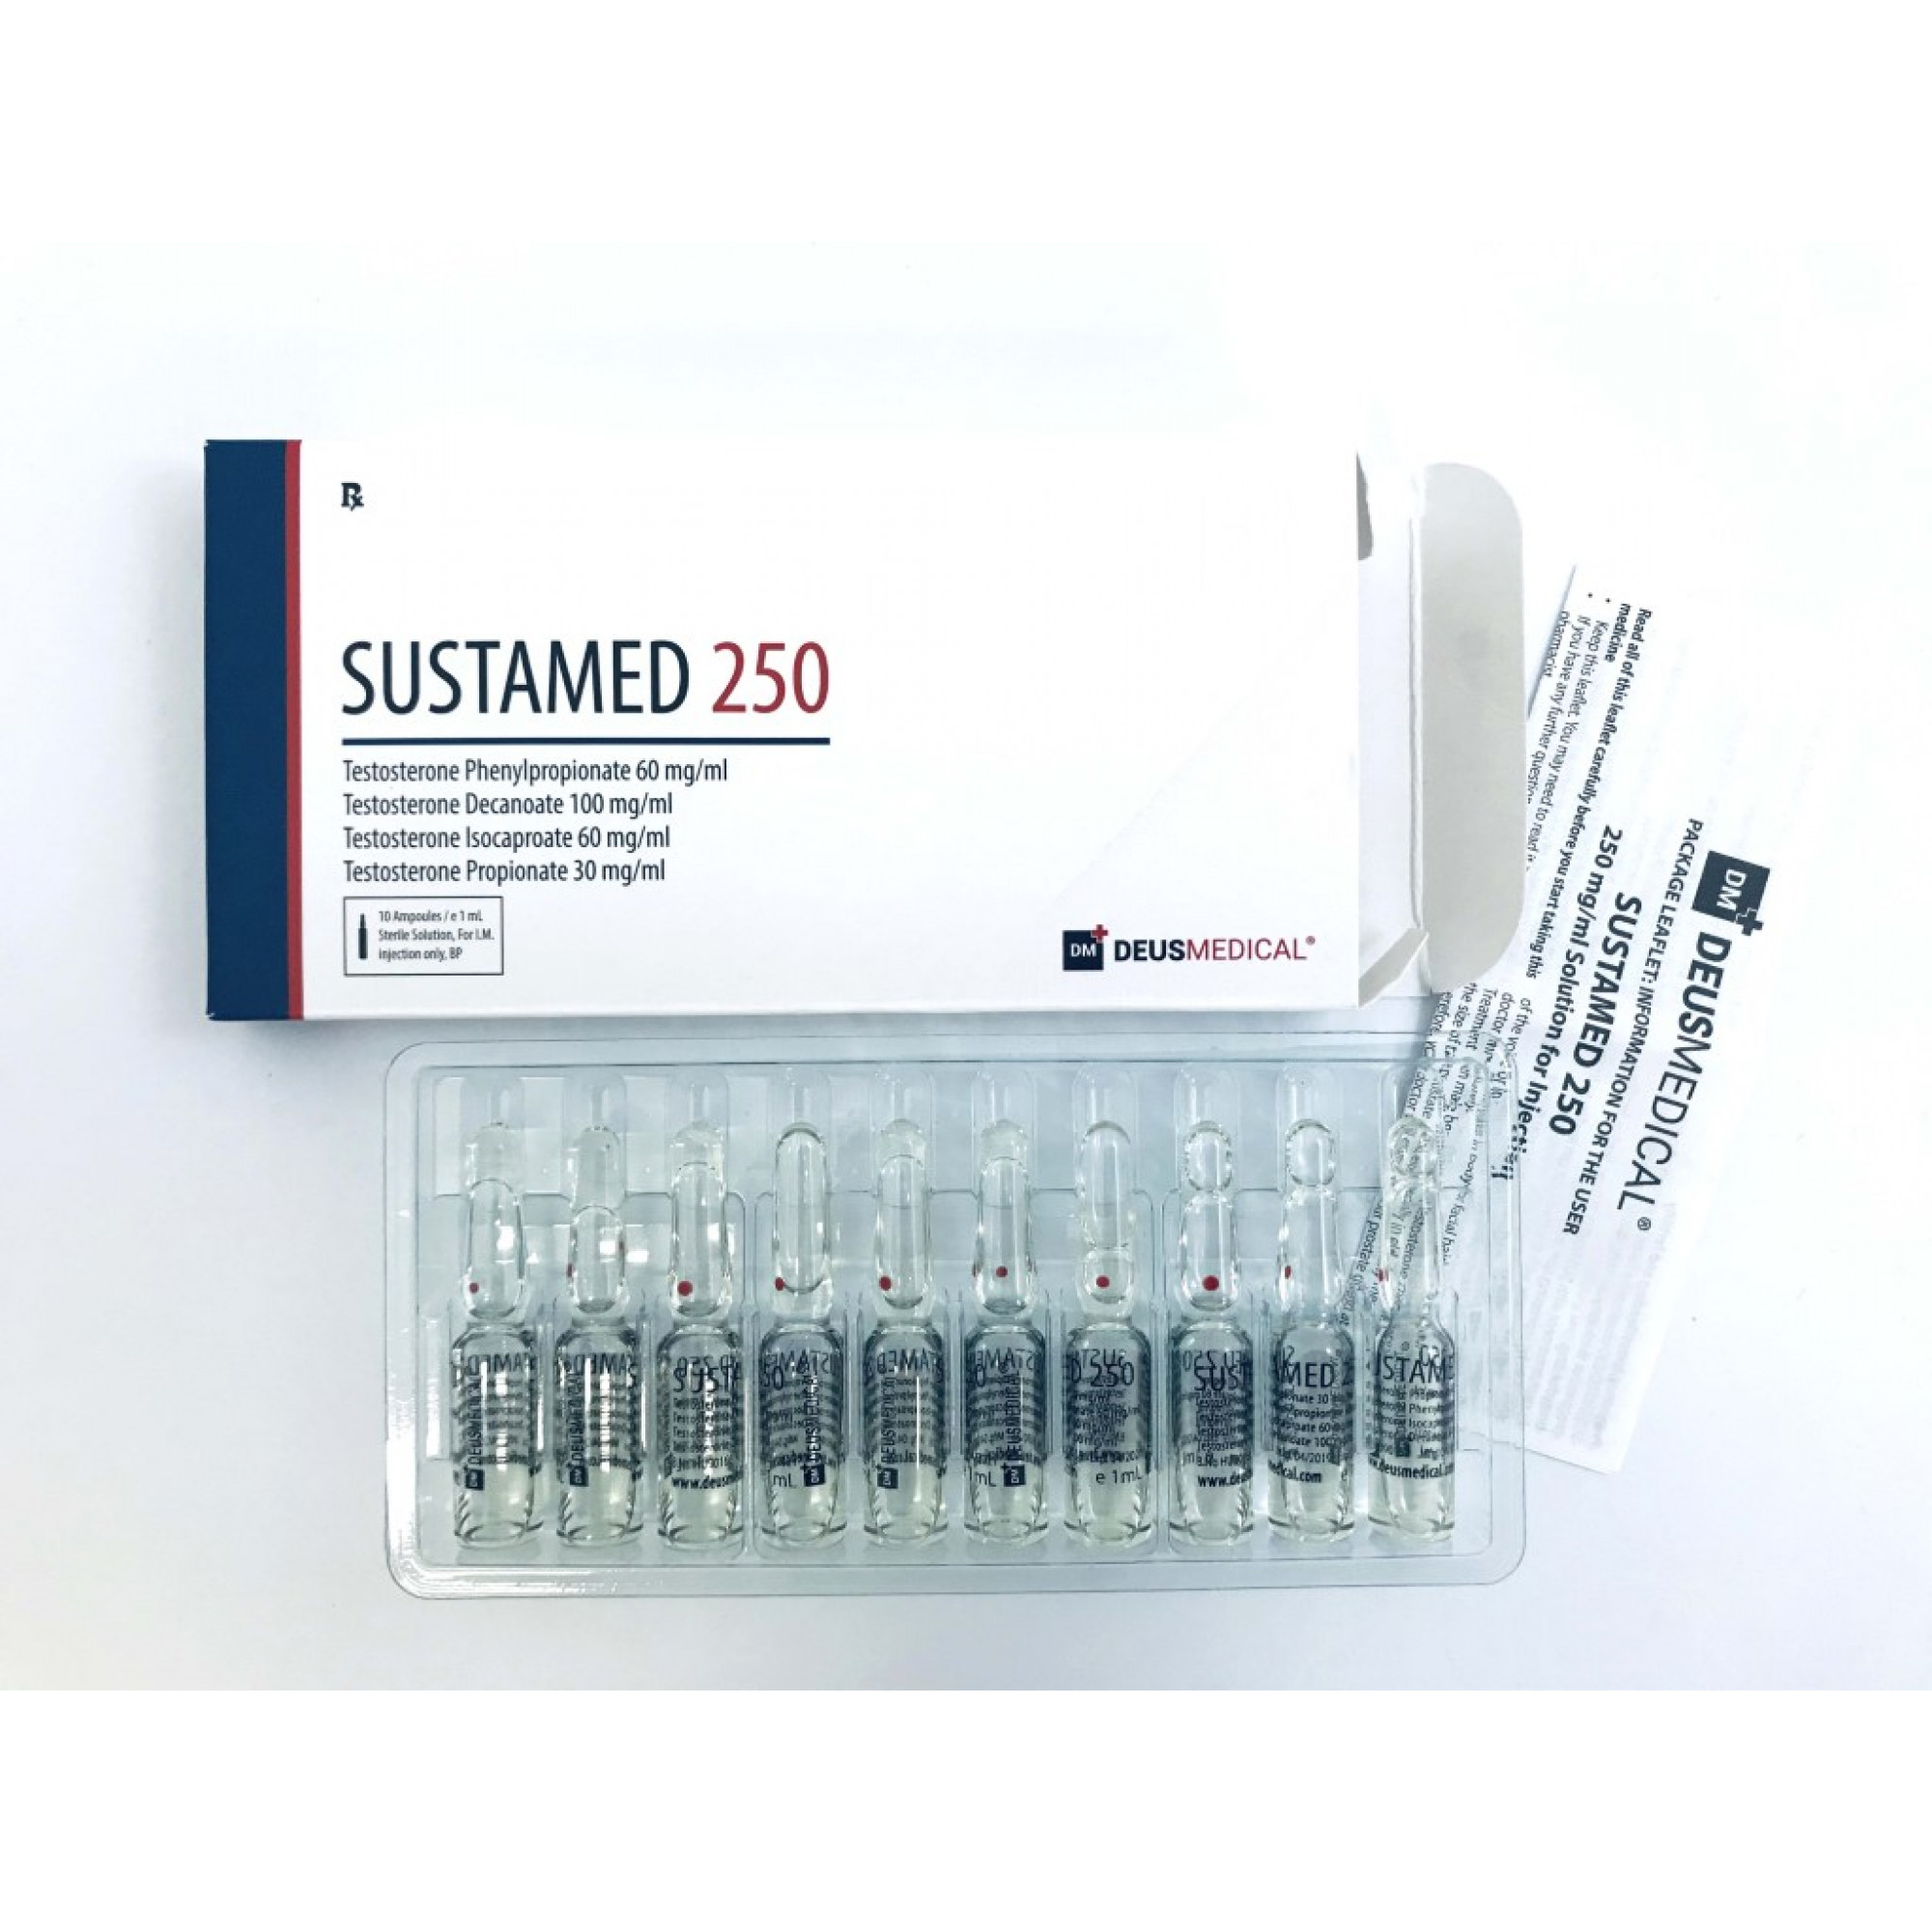 SUSTAMED 250 (Sustanon), DEUS MEDICAL, BUY STEROIDS ONLINE - www.DEUSPOWER.com